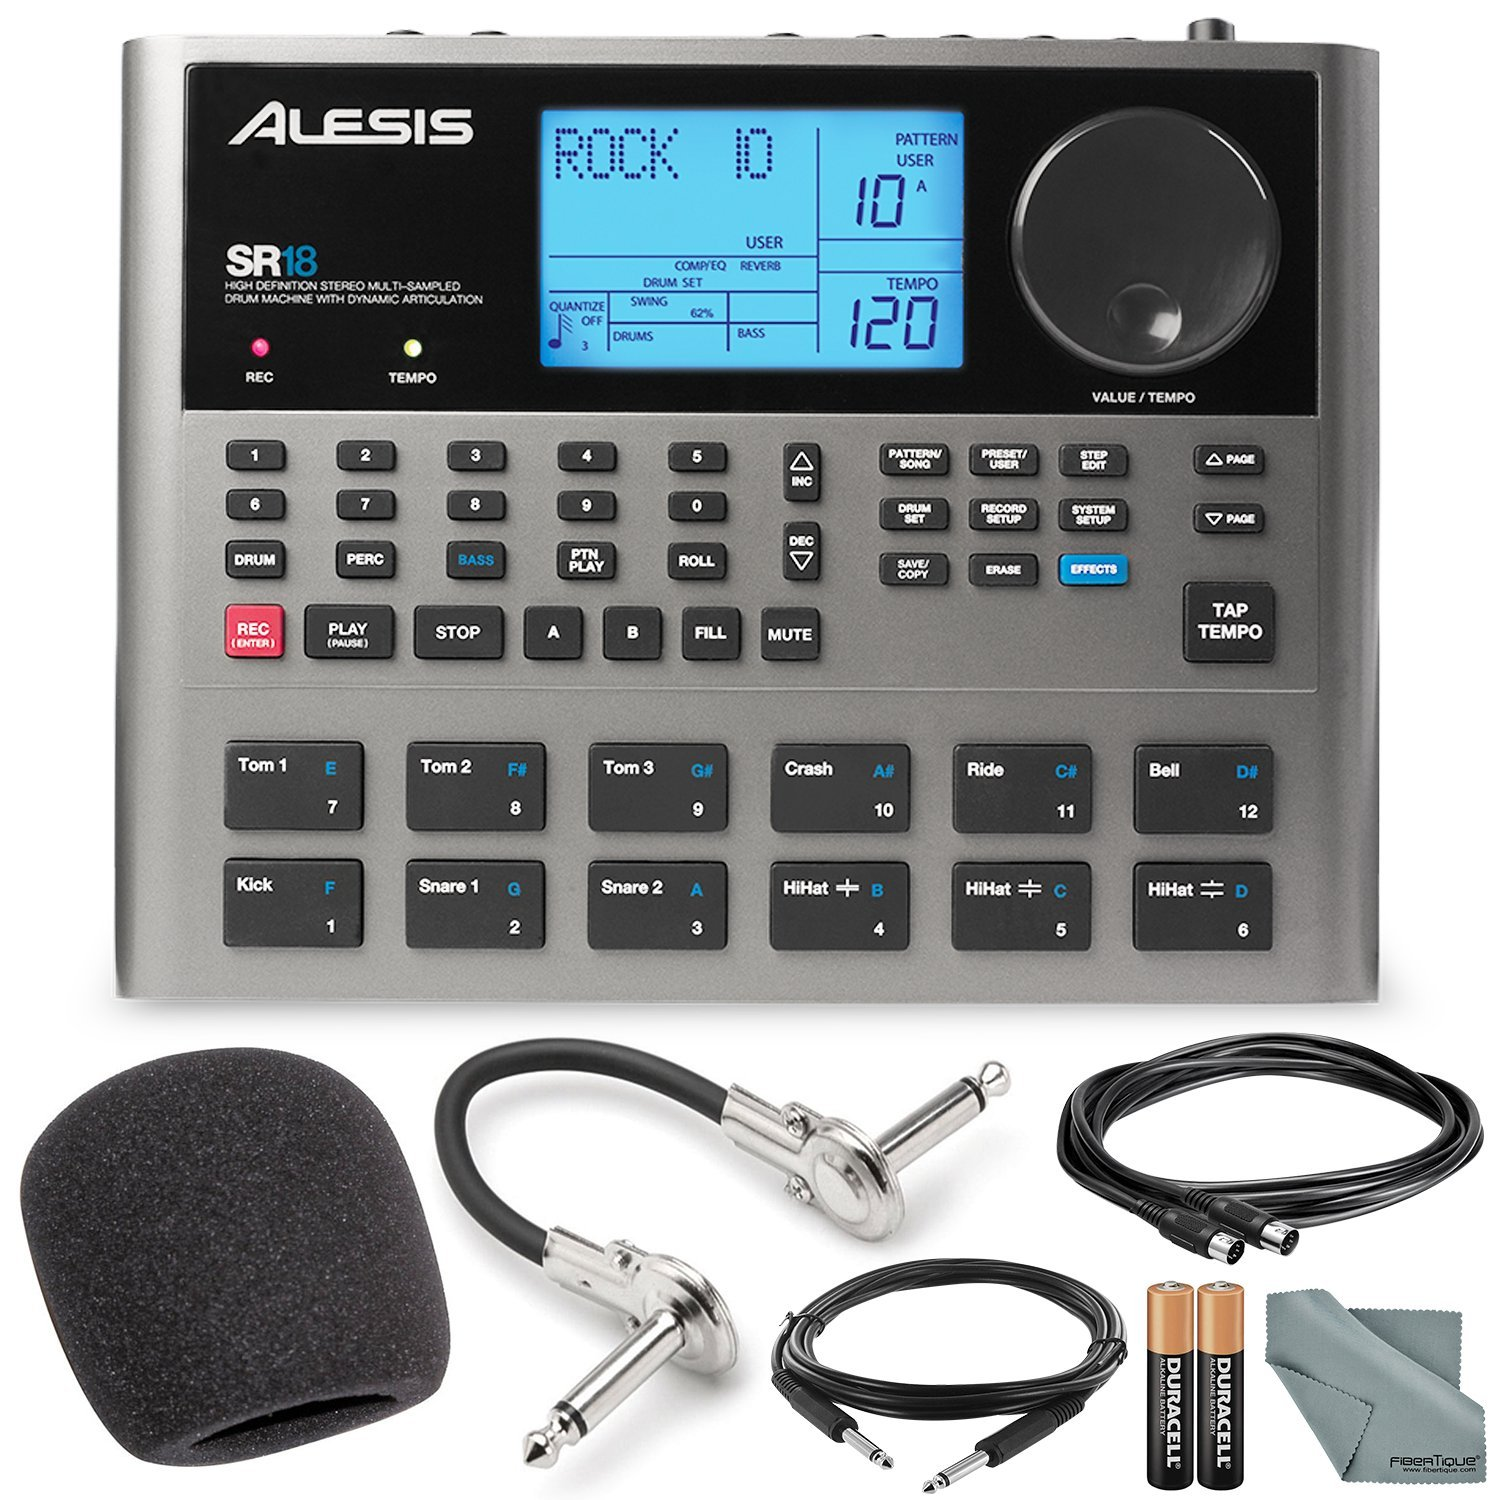 Alesis SR18 18 Bit Portable Drum Machine with Effects and Platinum Bundle w/Microphone + Headphone + Cables + Fibertique + Batteries & Charger + Mic Stand & Windscreen Photo Savings